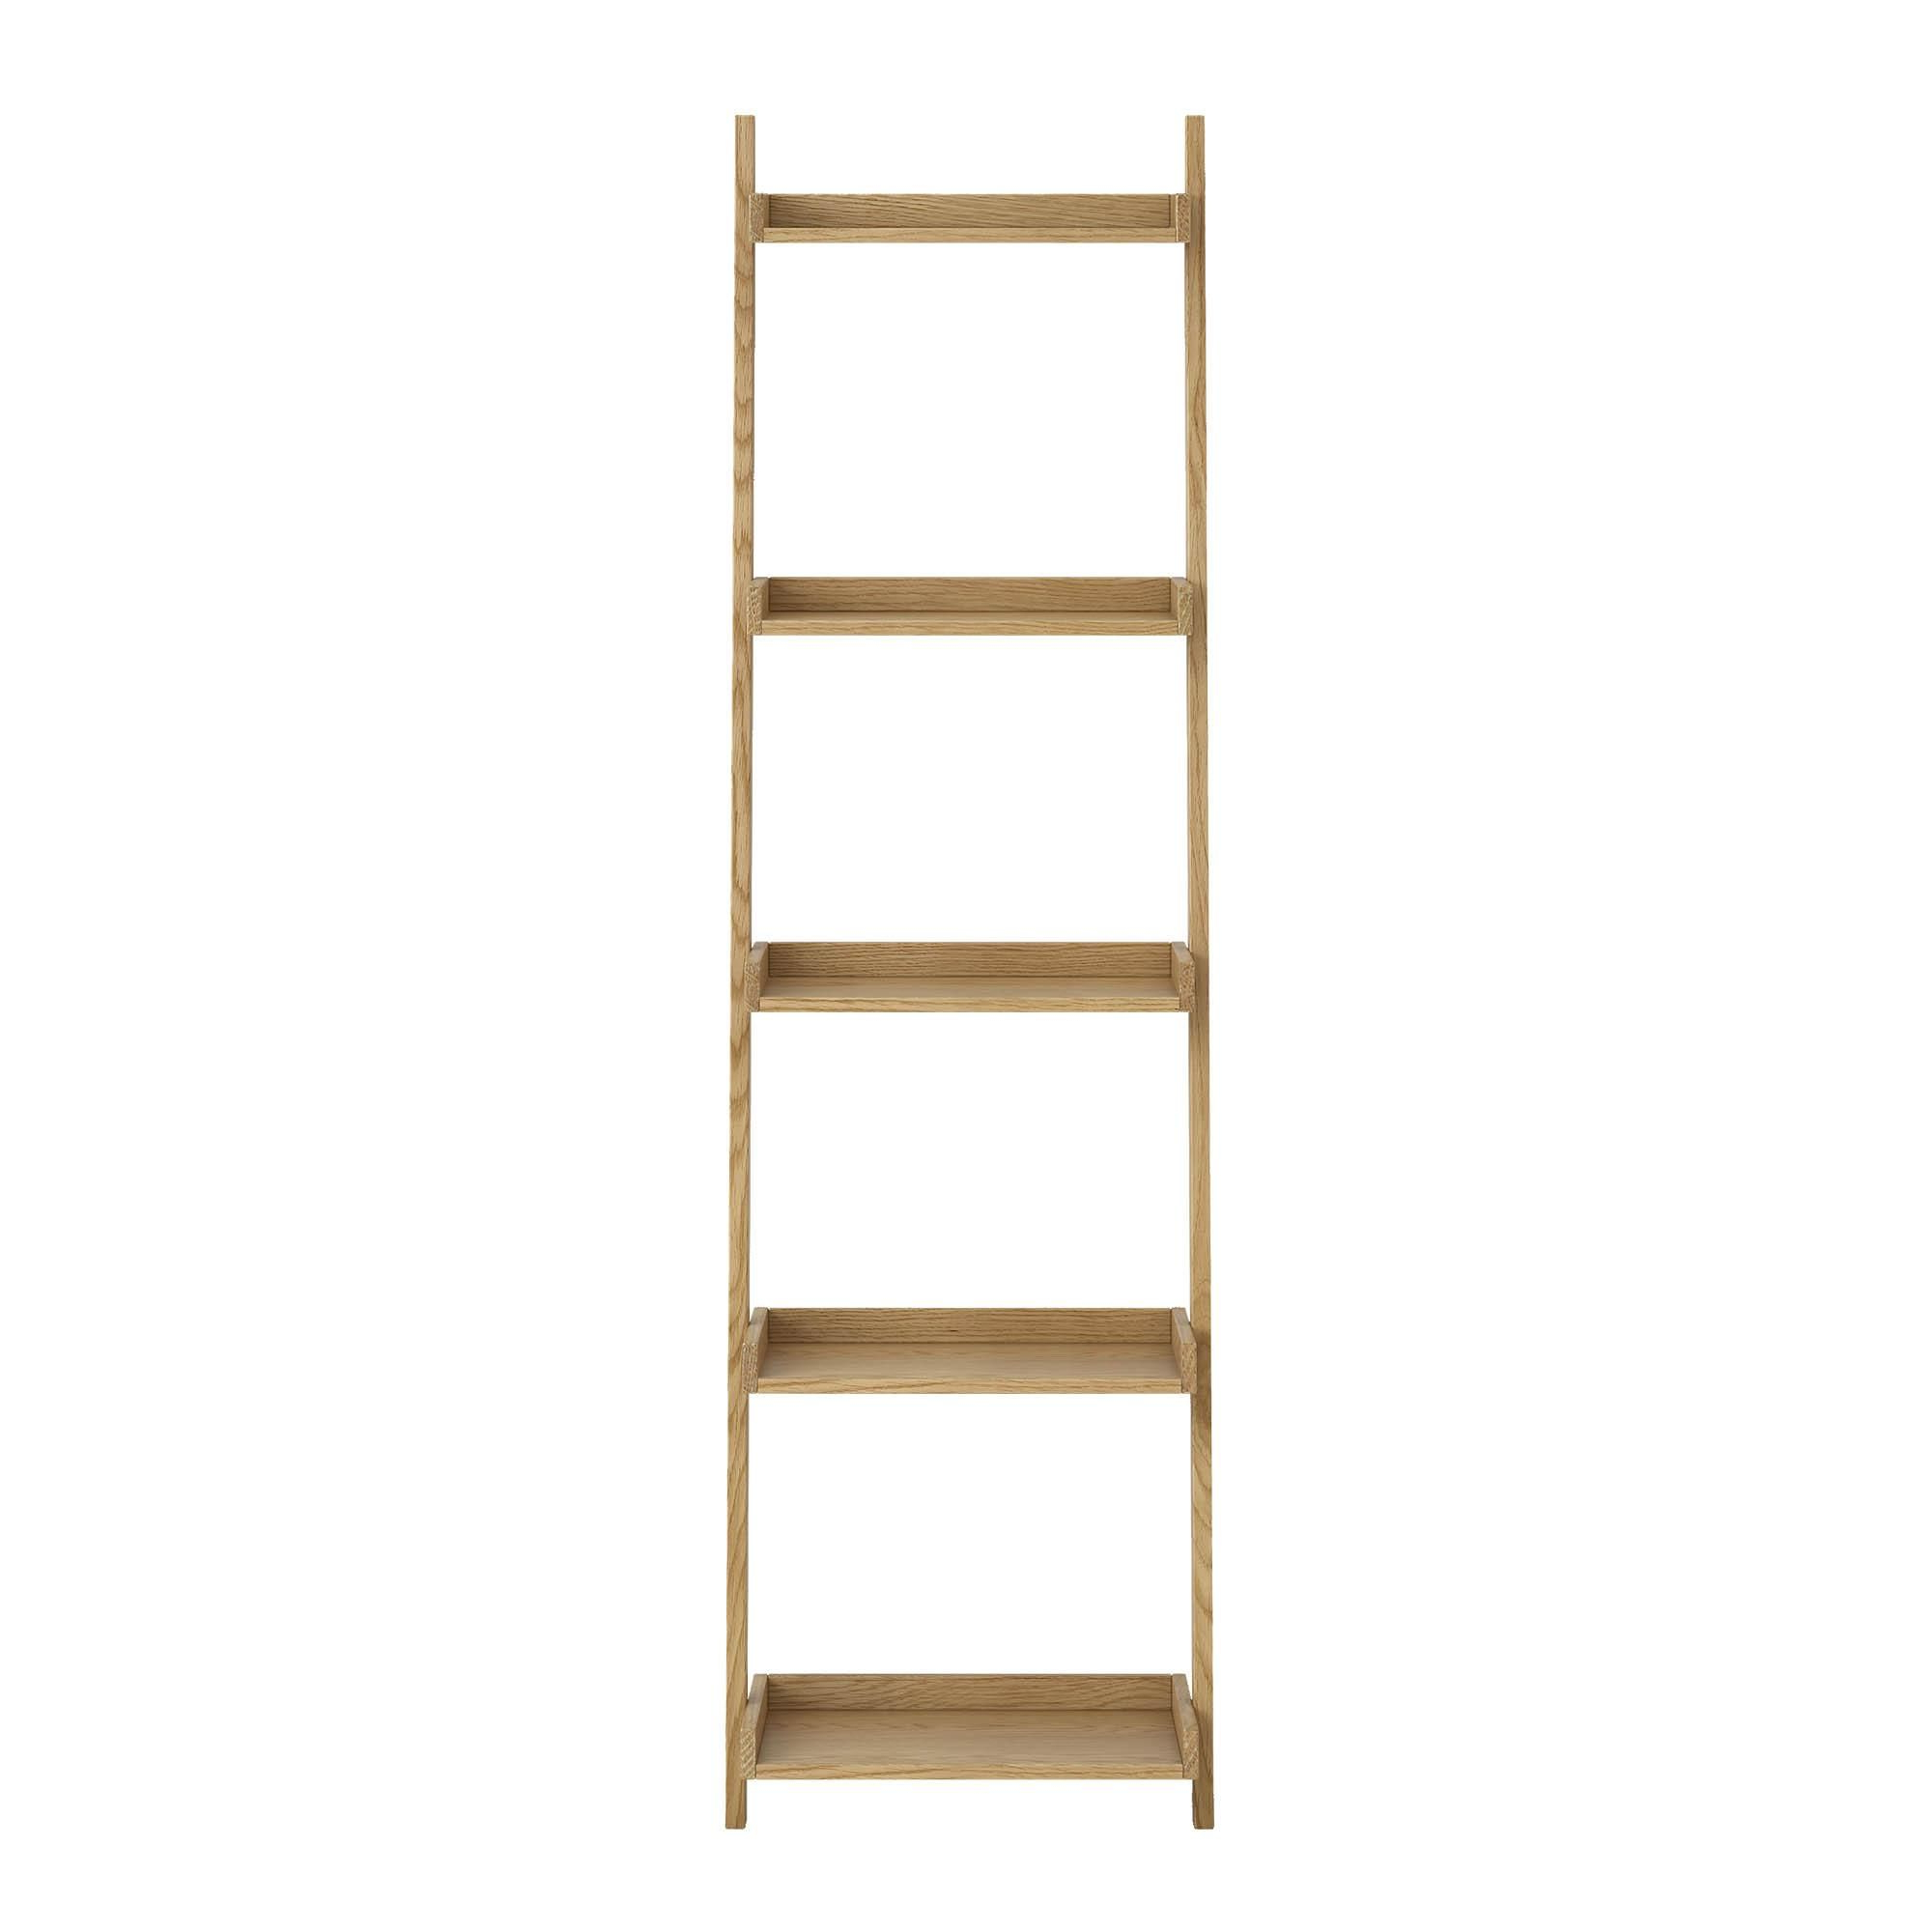 Most Recent Thin Bookcase Sidmouth Oak Narrow Ladder Bookcase Ktojtim In Within Narrow Ladder Bookcases (View 13 of 20)